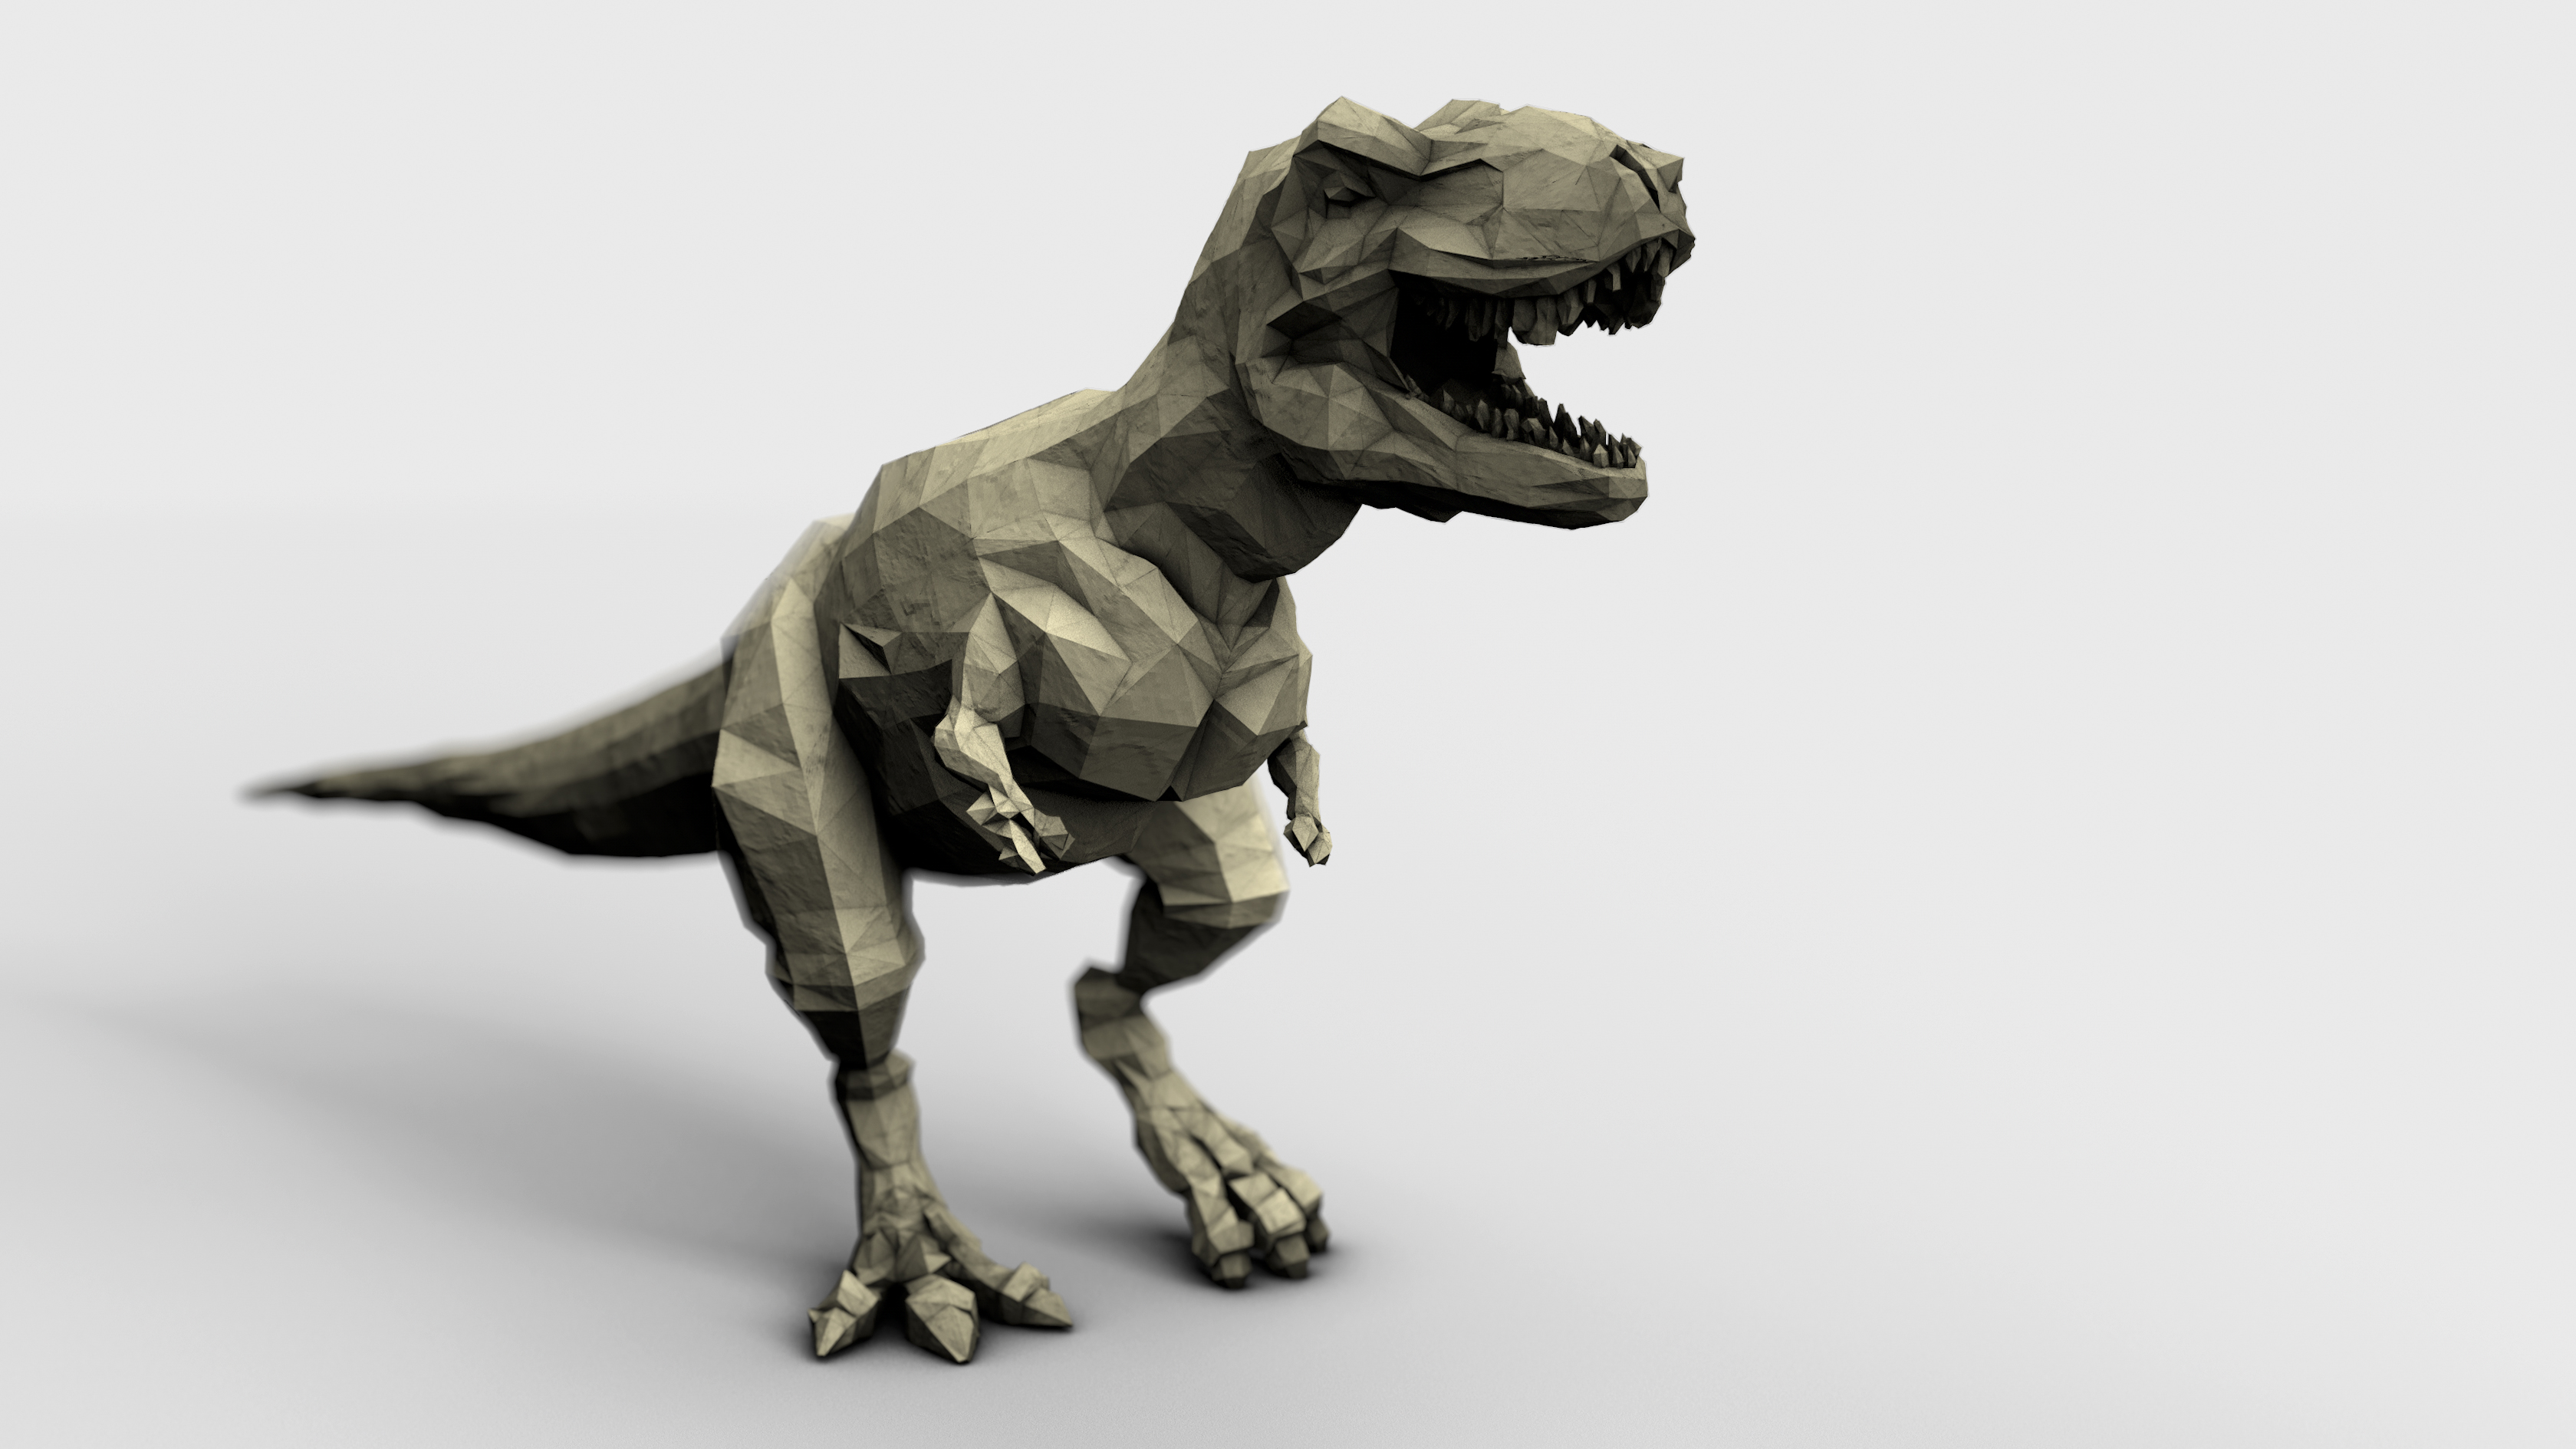 origami t-rex | Flickr - Photo Sharing! - photo#38